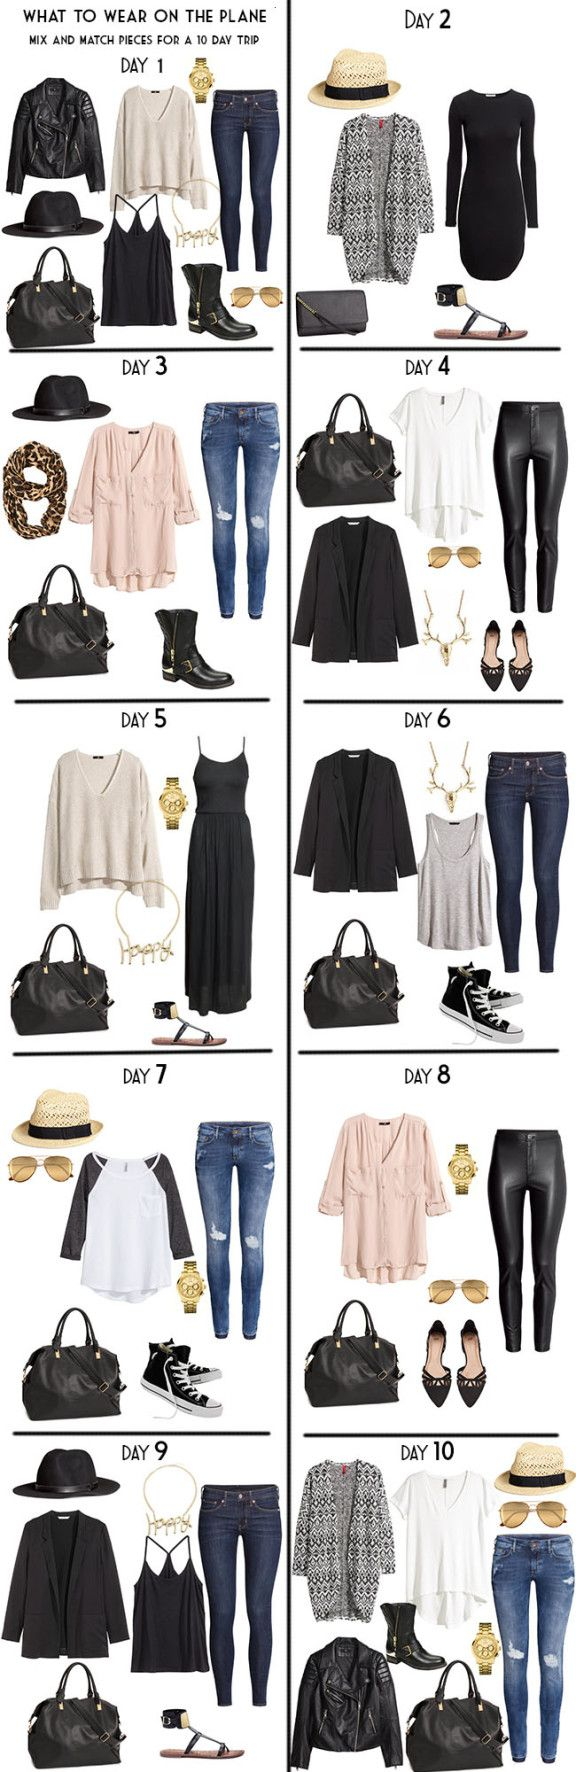 Packing List Day Outfits More